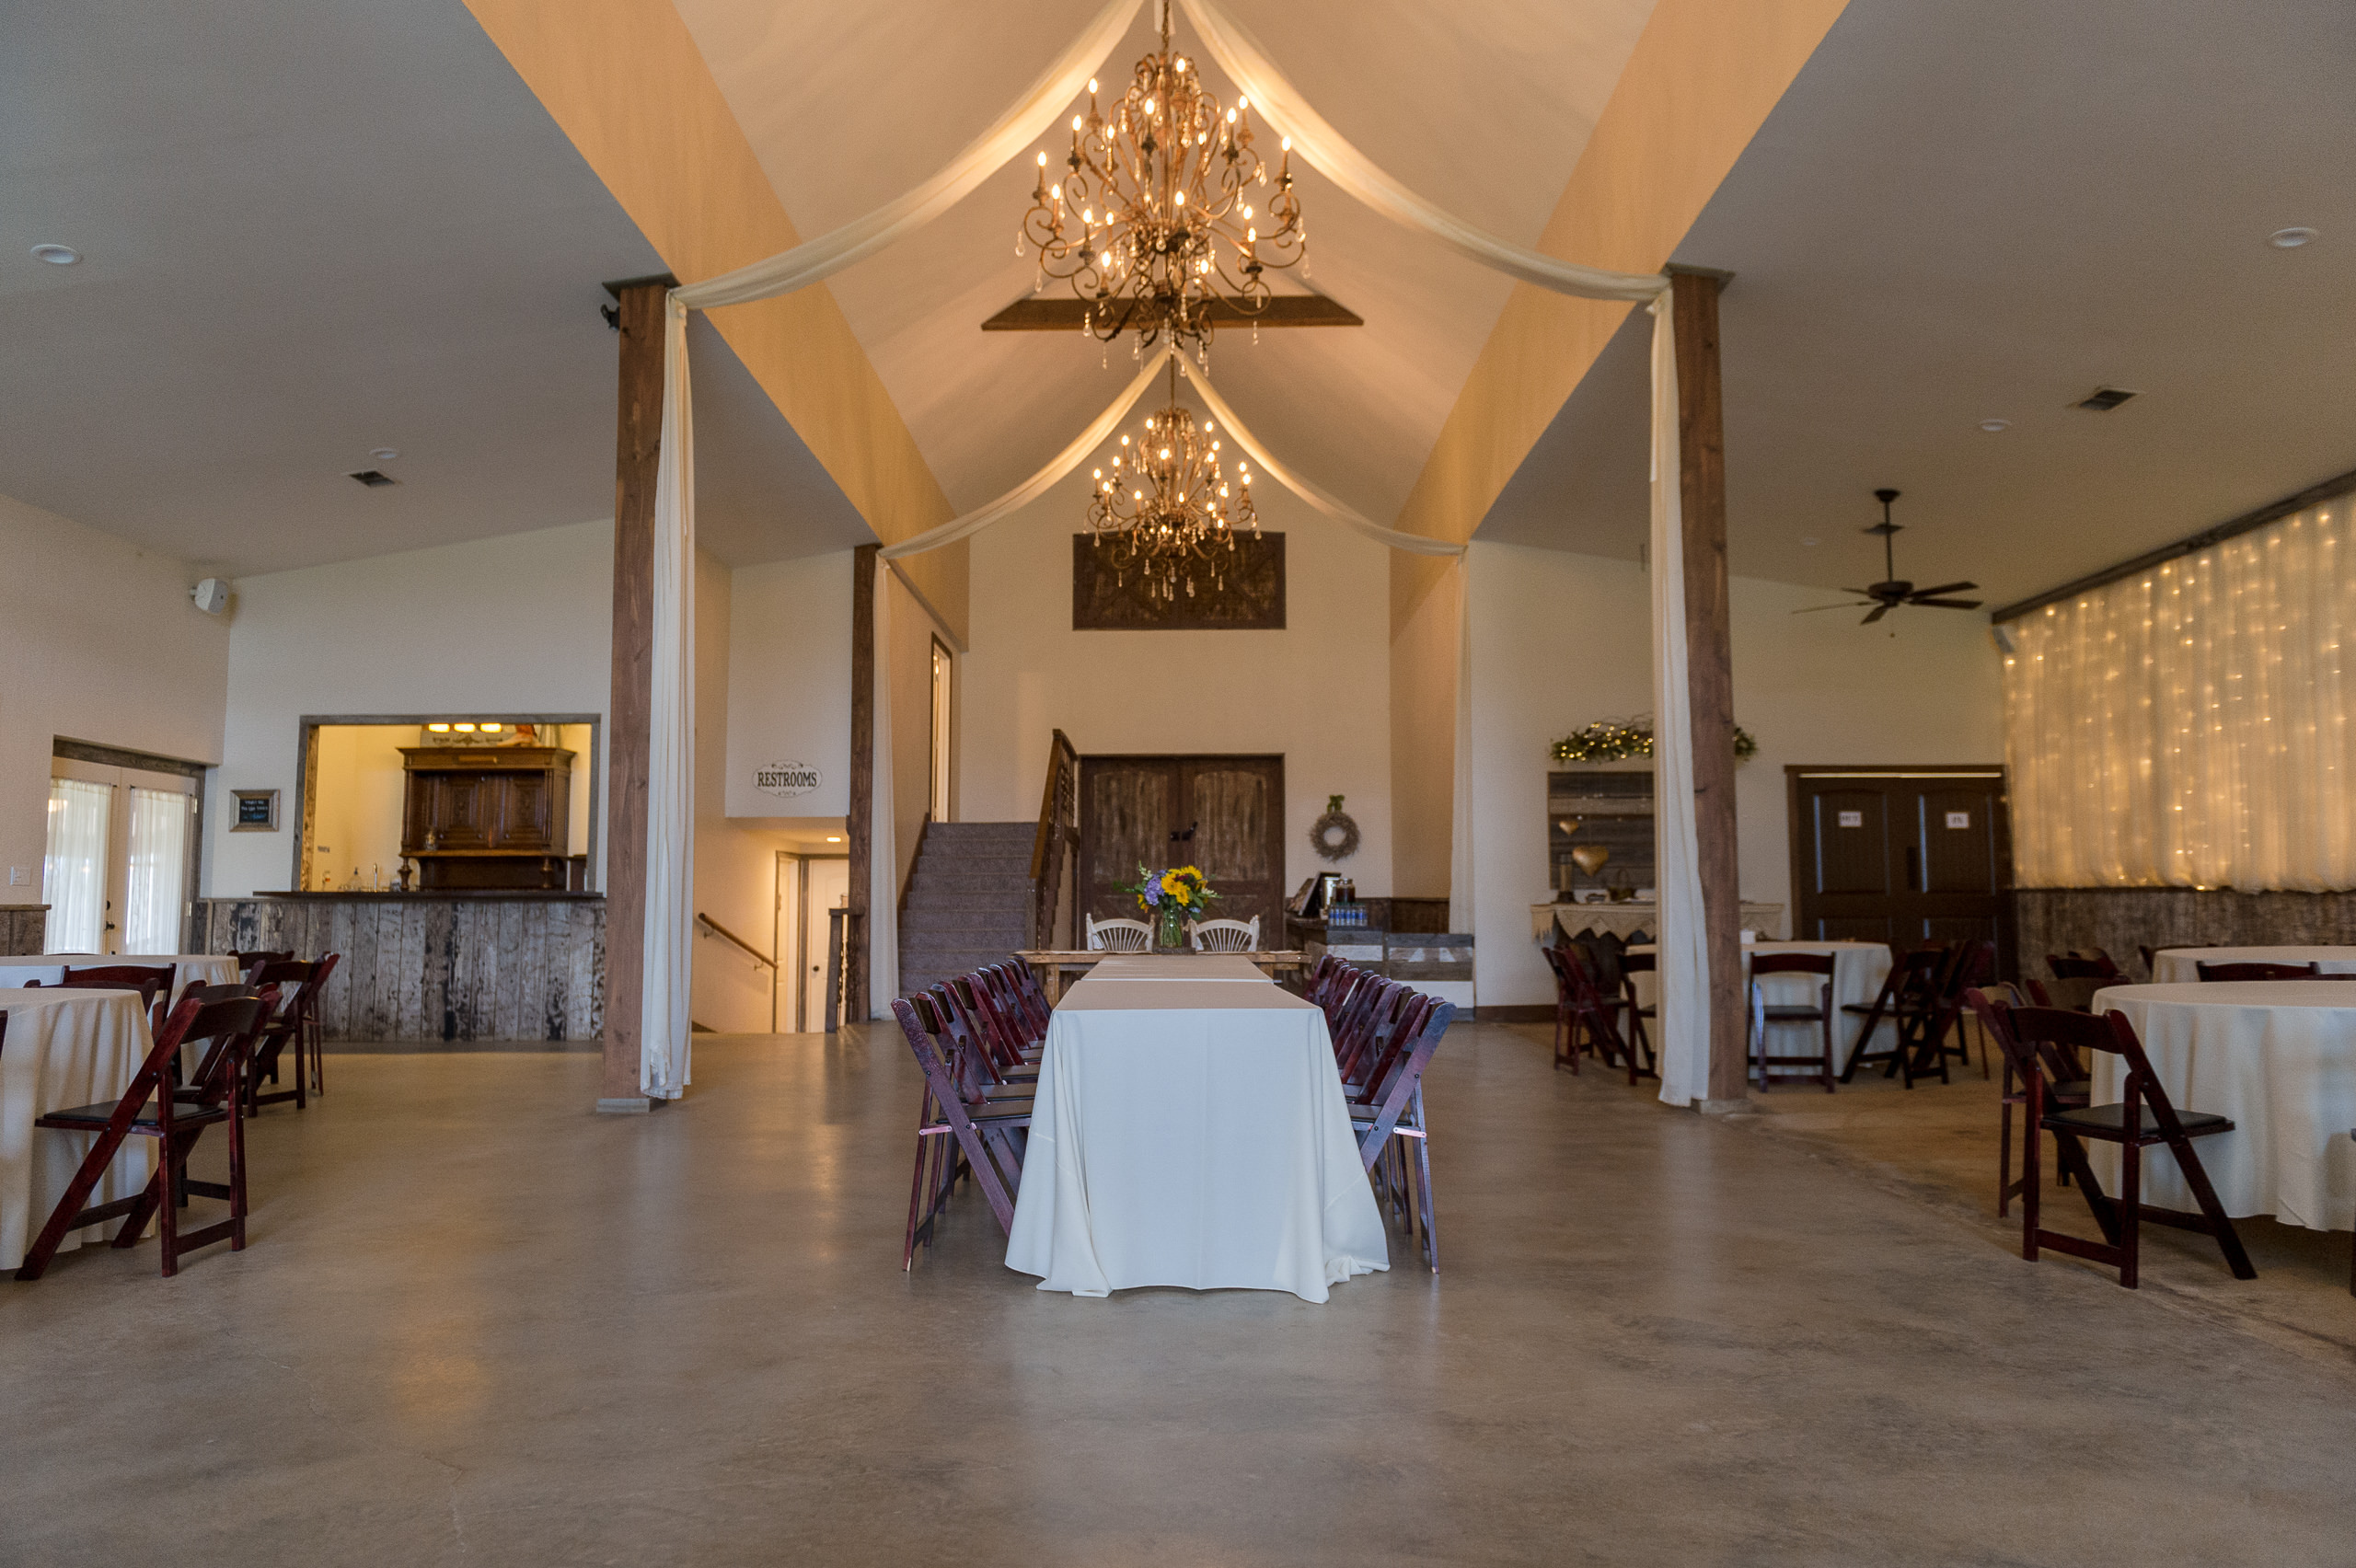 cw-hill-country-ranch-texas-hill-country-wedding-venue-in-boerne-_4S26134